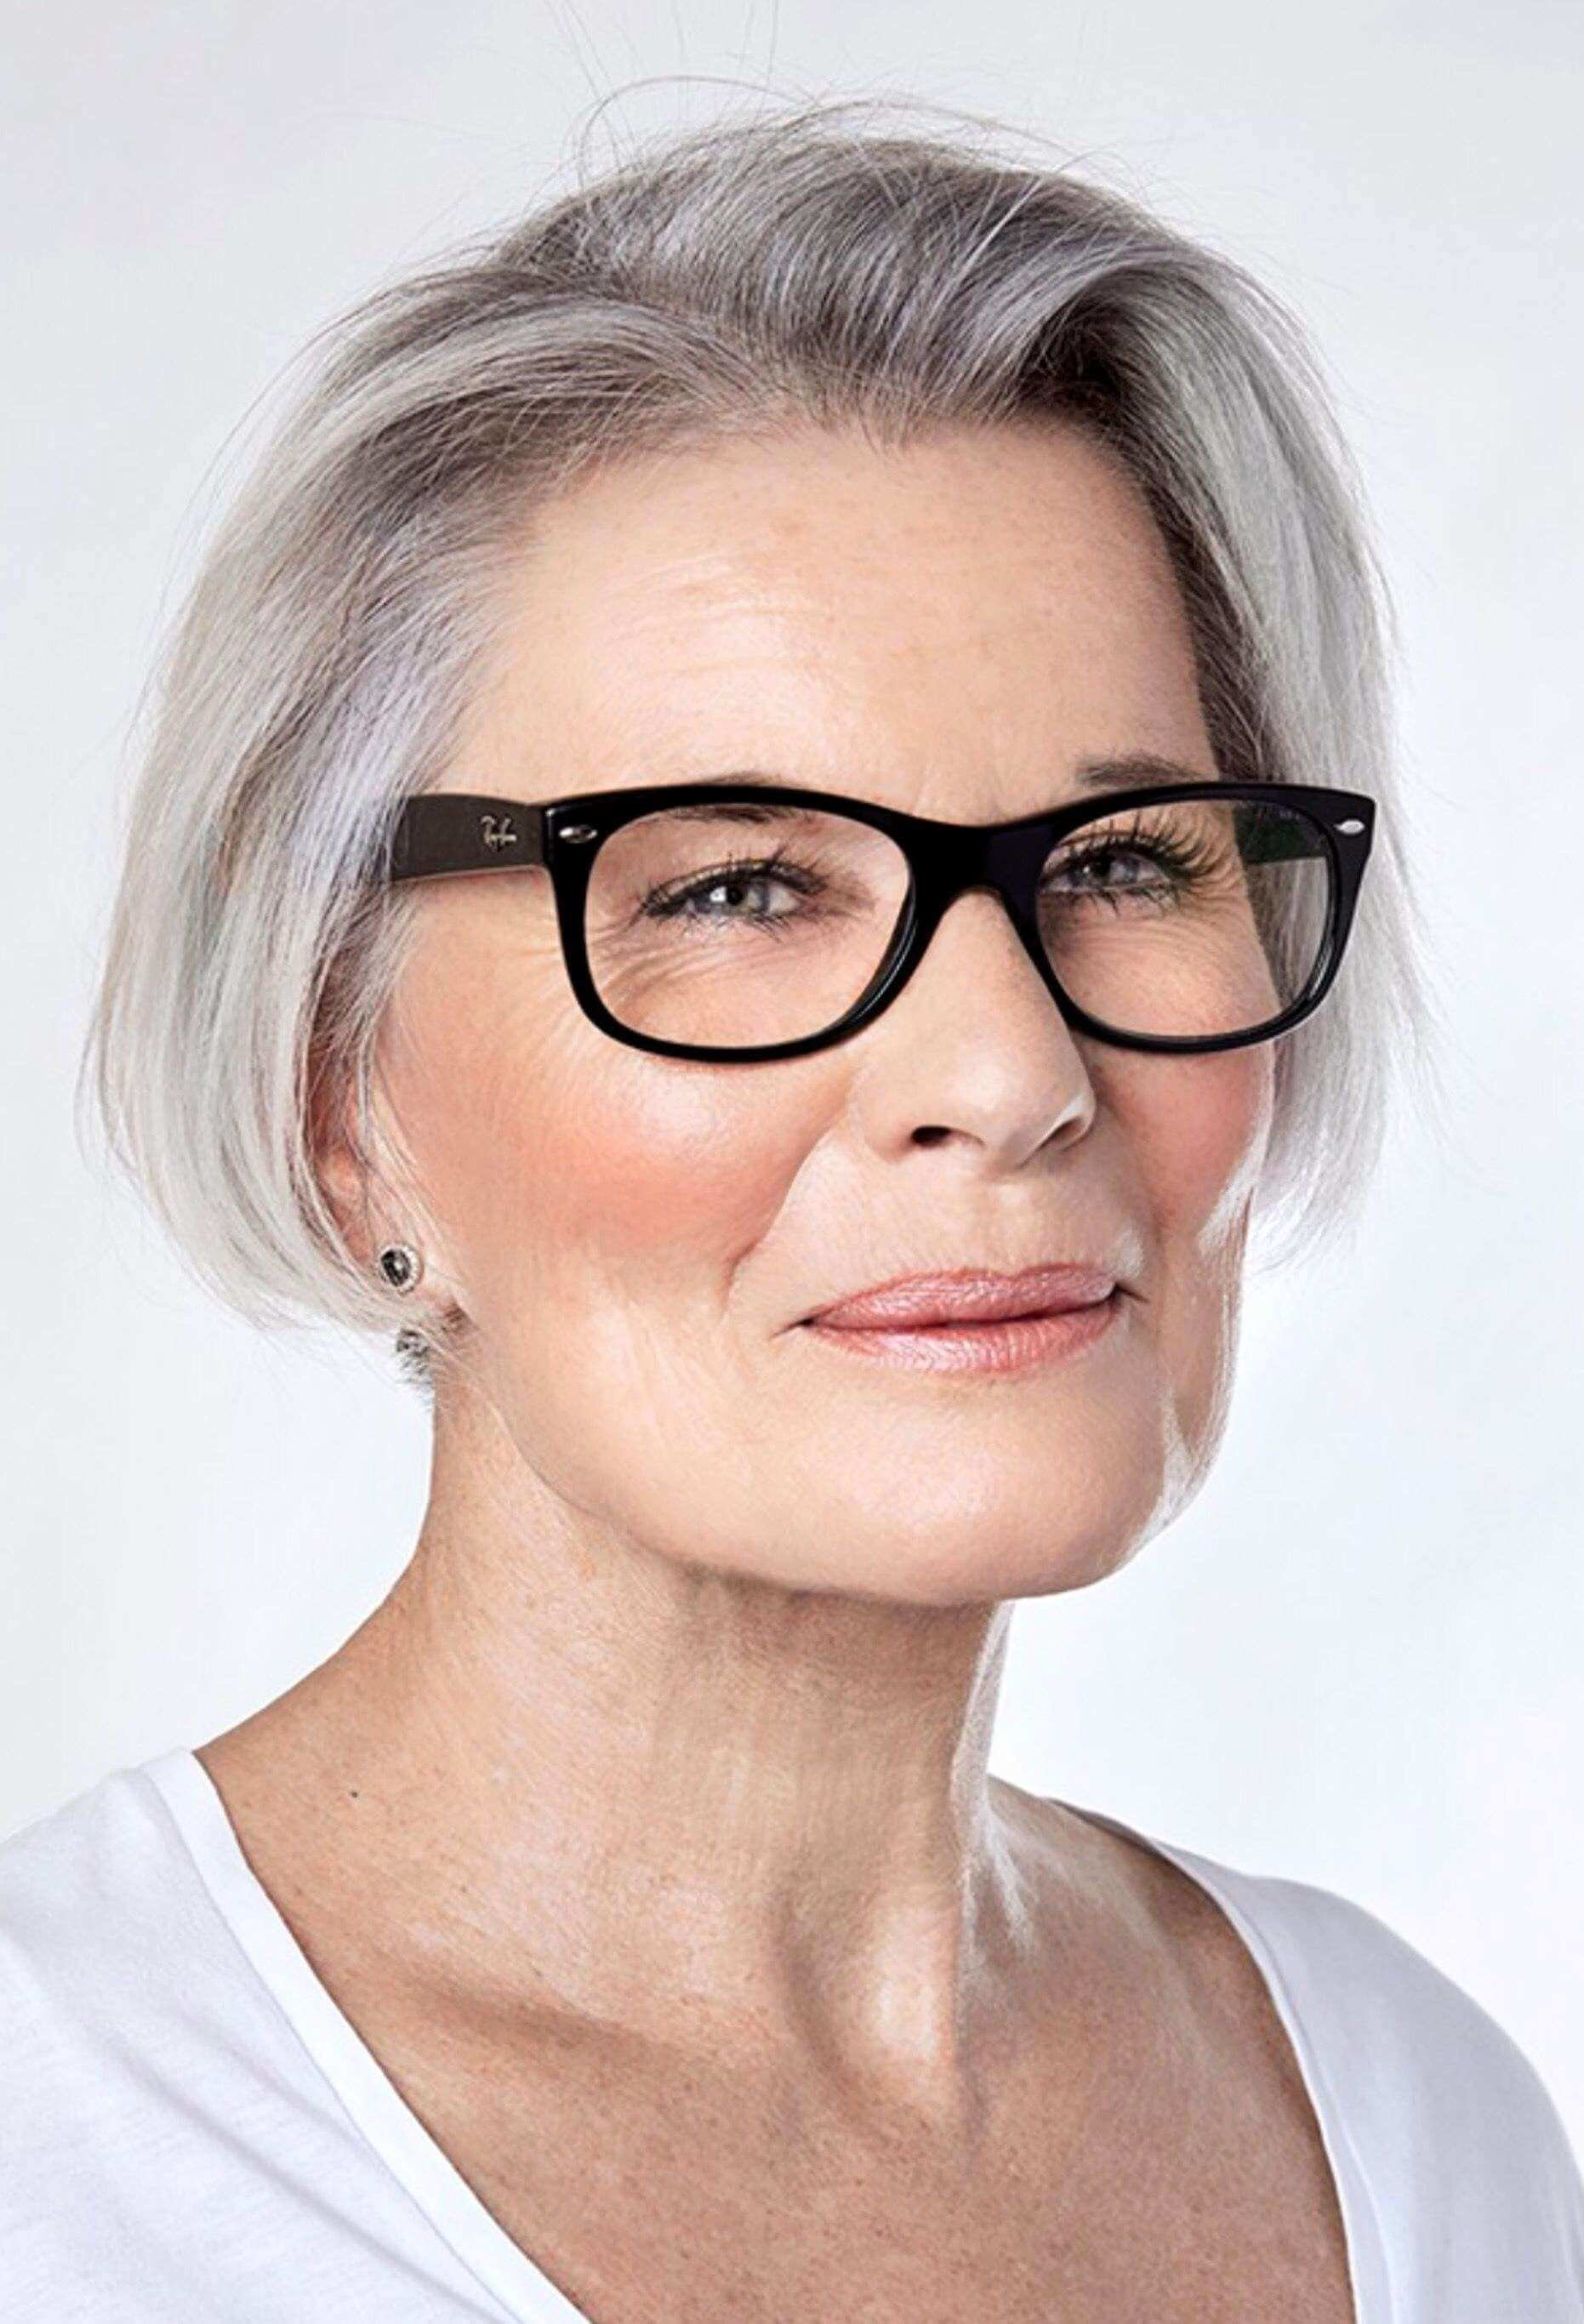 The Best 60 Hairstyles For Women Over 50 With Glasses Pictures